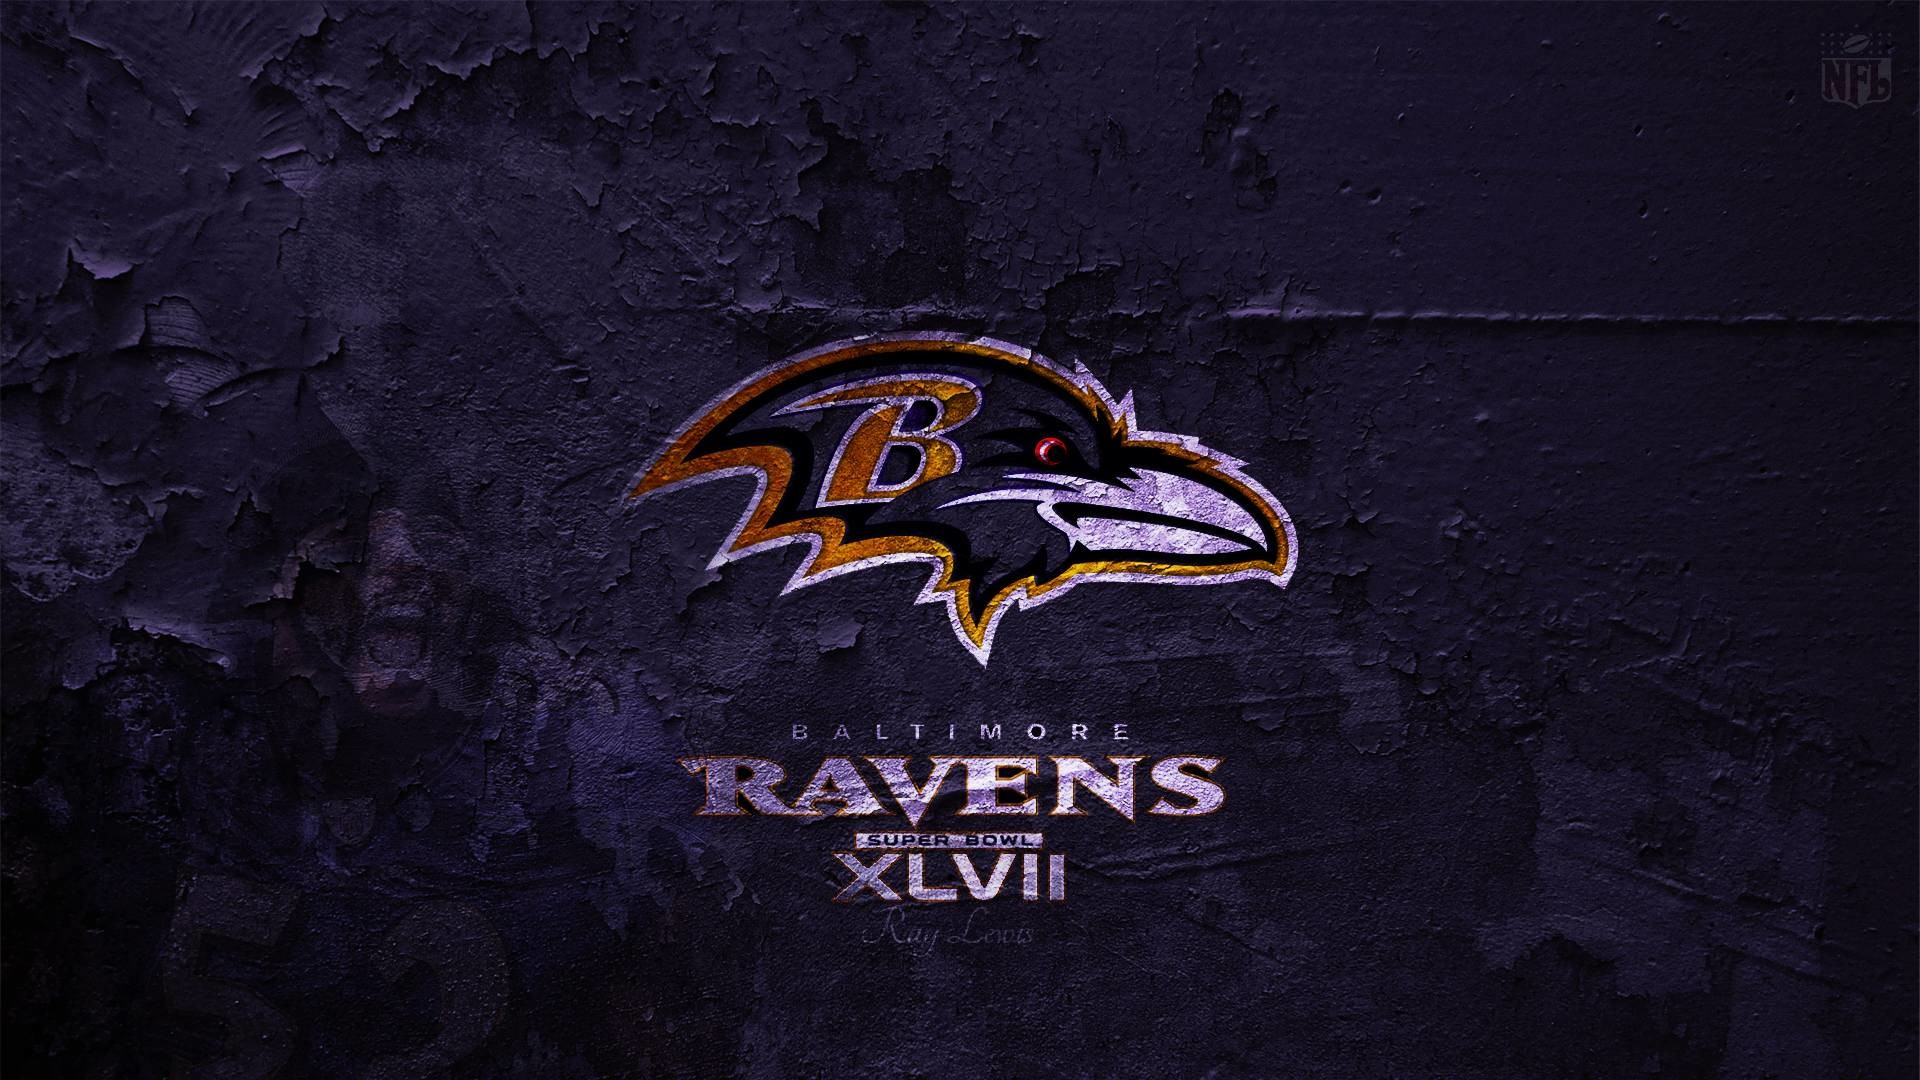 Baltimore Ravens Screensavers and Wallpaper 72 images 1920x1080